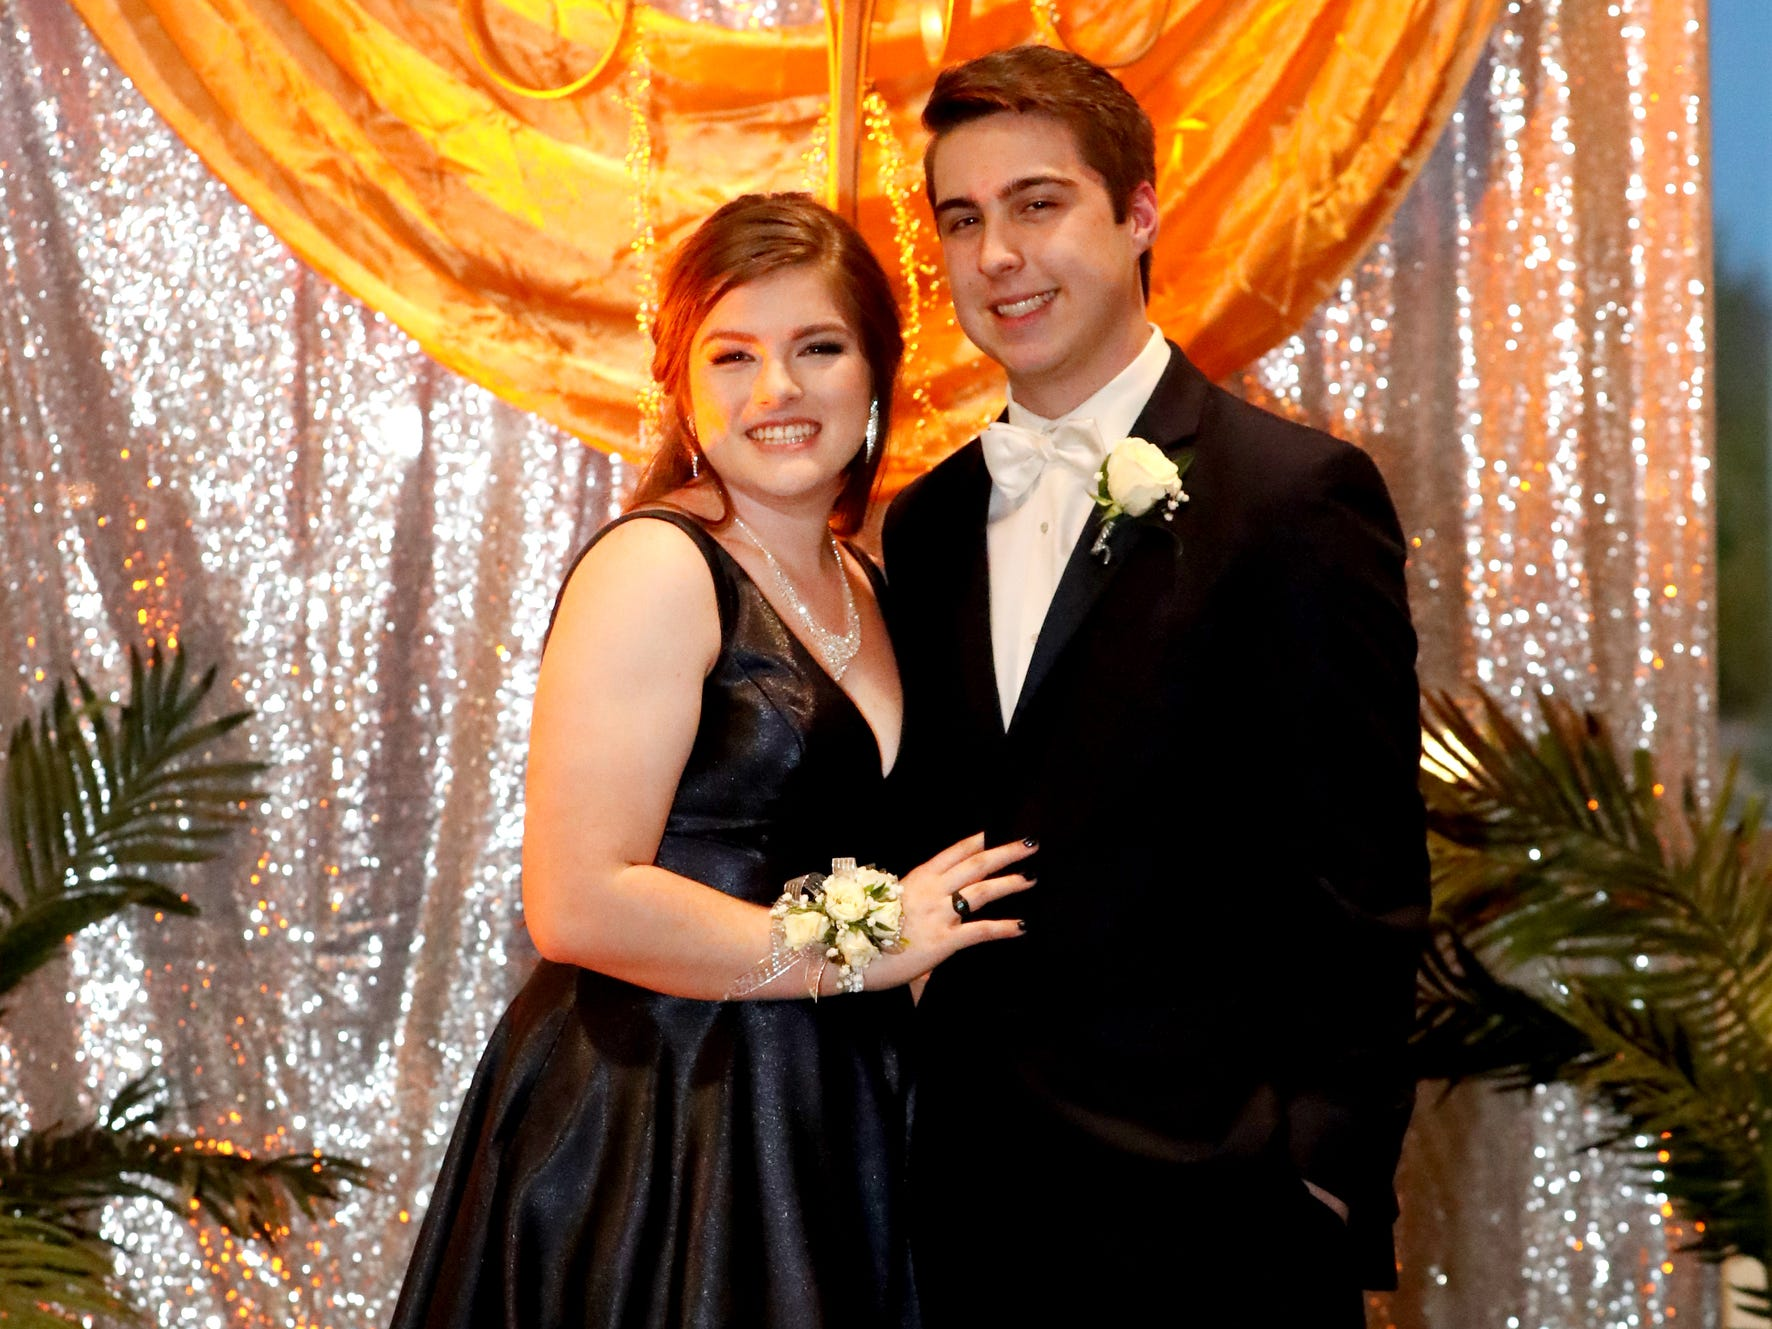 Bailey Eshleman, left and Garrett Cole, right at Blackman's prom on Friday April 12, 2019, at MTSU.